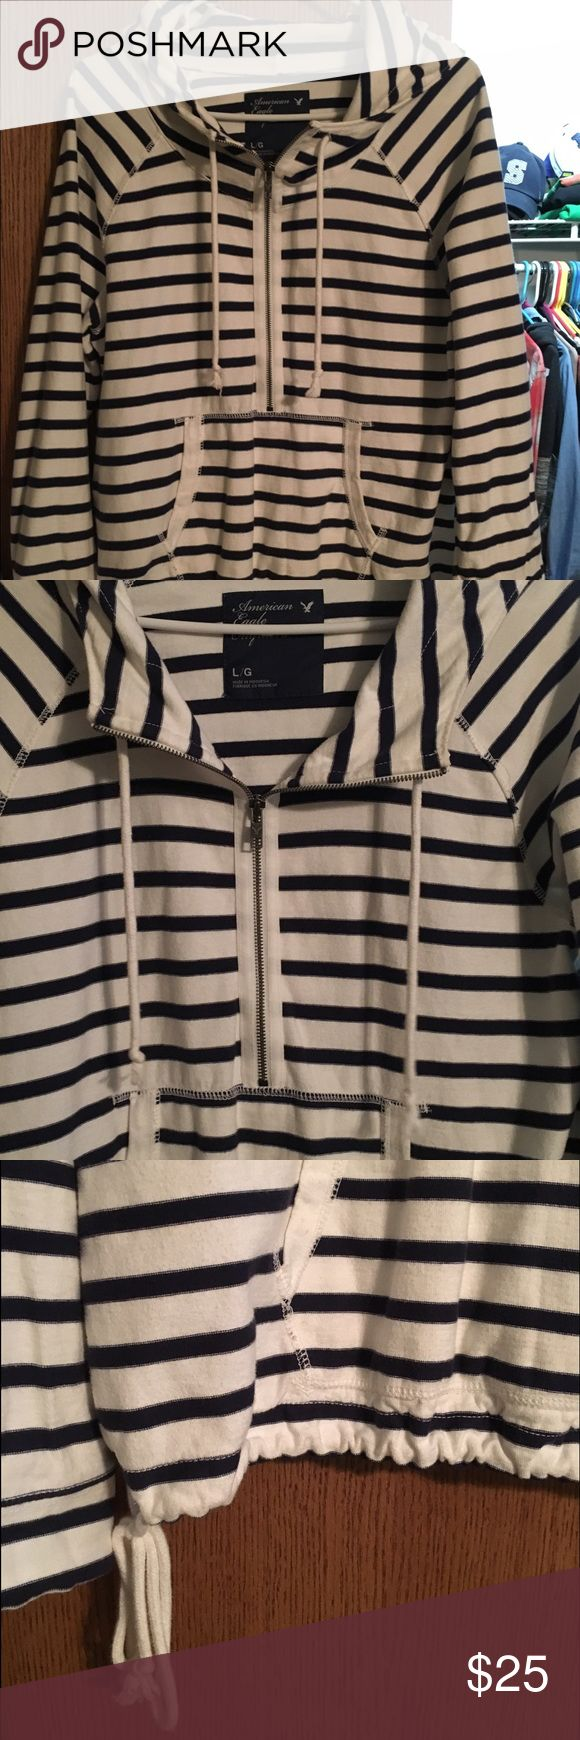 American Eagle Striped Hoodie Blue and white striped hoodie, quarter-zip, tie on bottom to synch. Hooded, front pocket. Great condition just doesn't fit anymore. American Eagle Outfitters Tops Sweatshirts & Hoodies